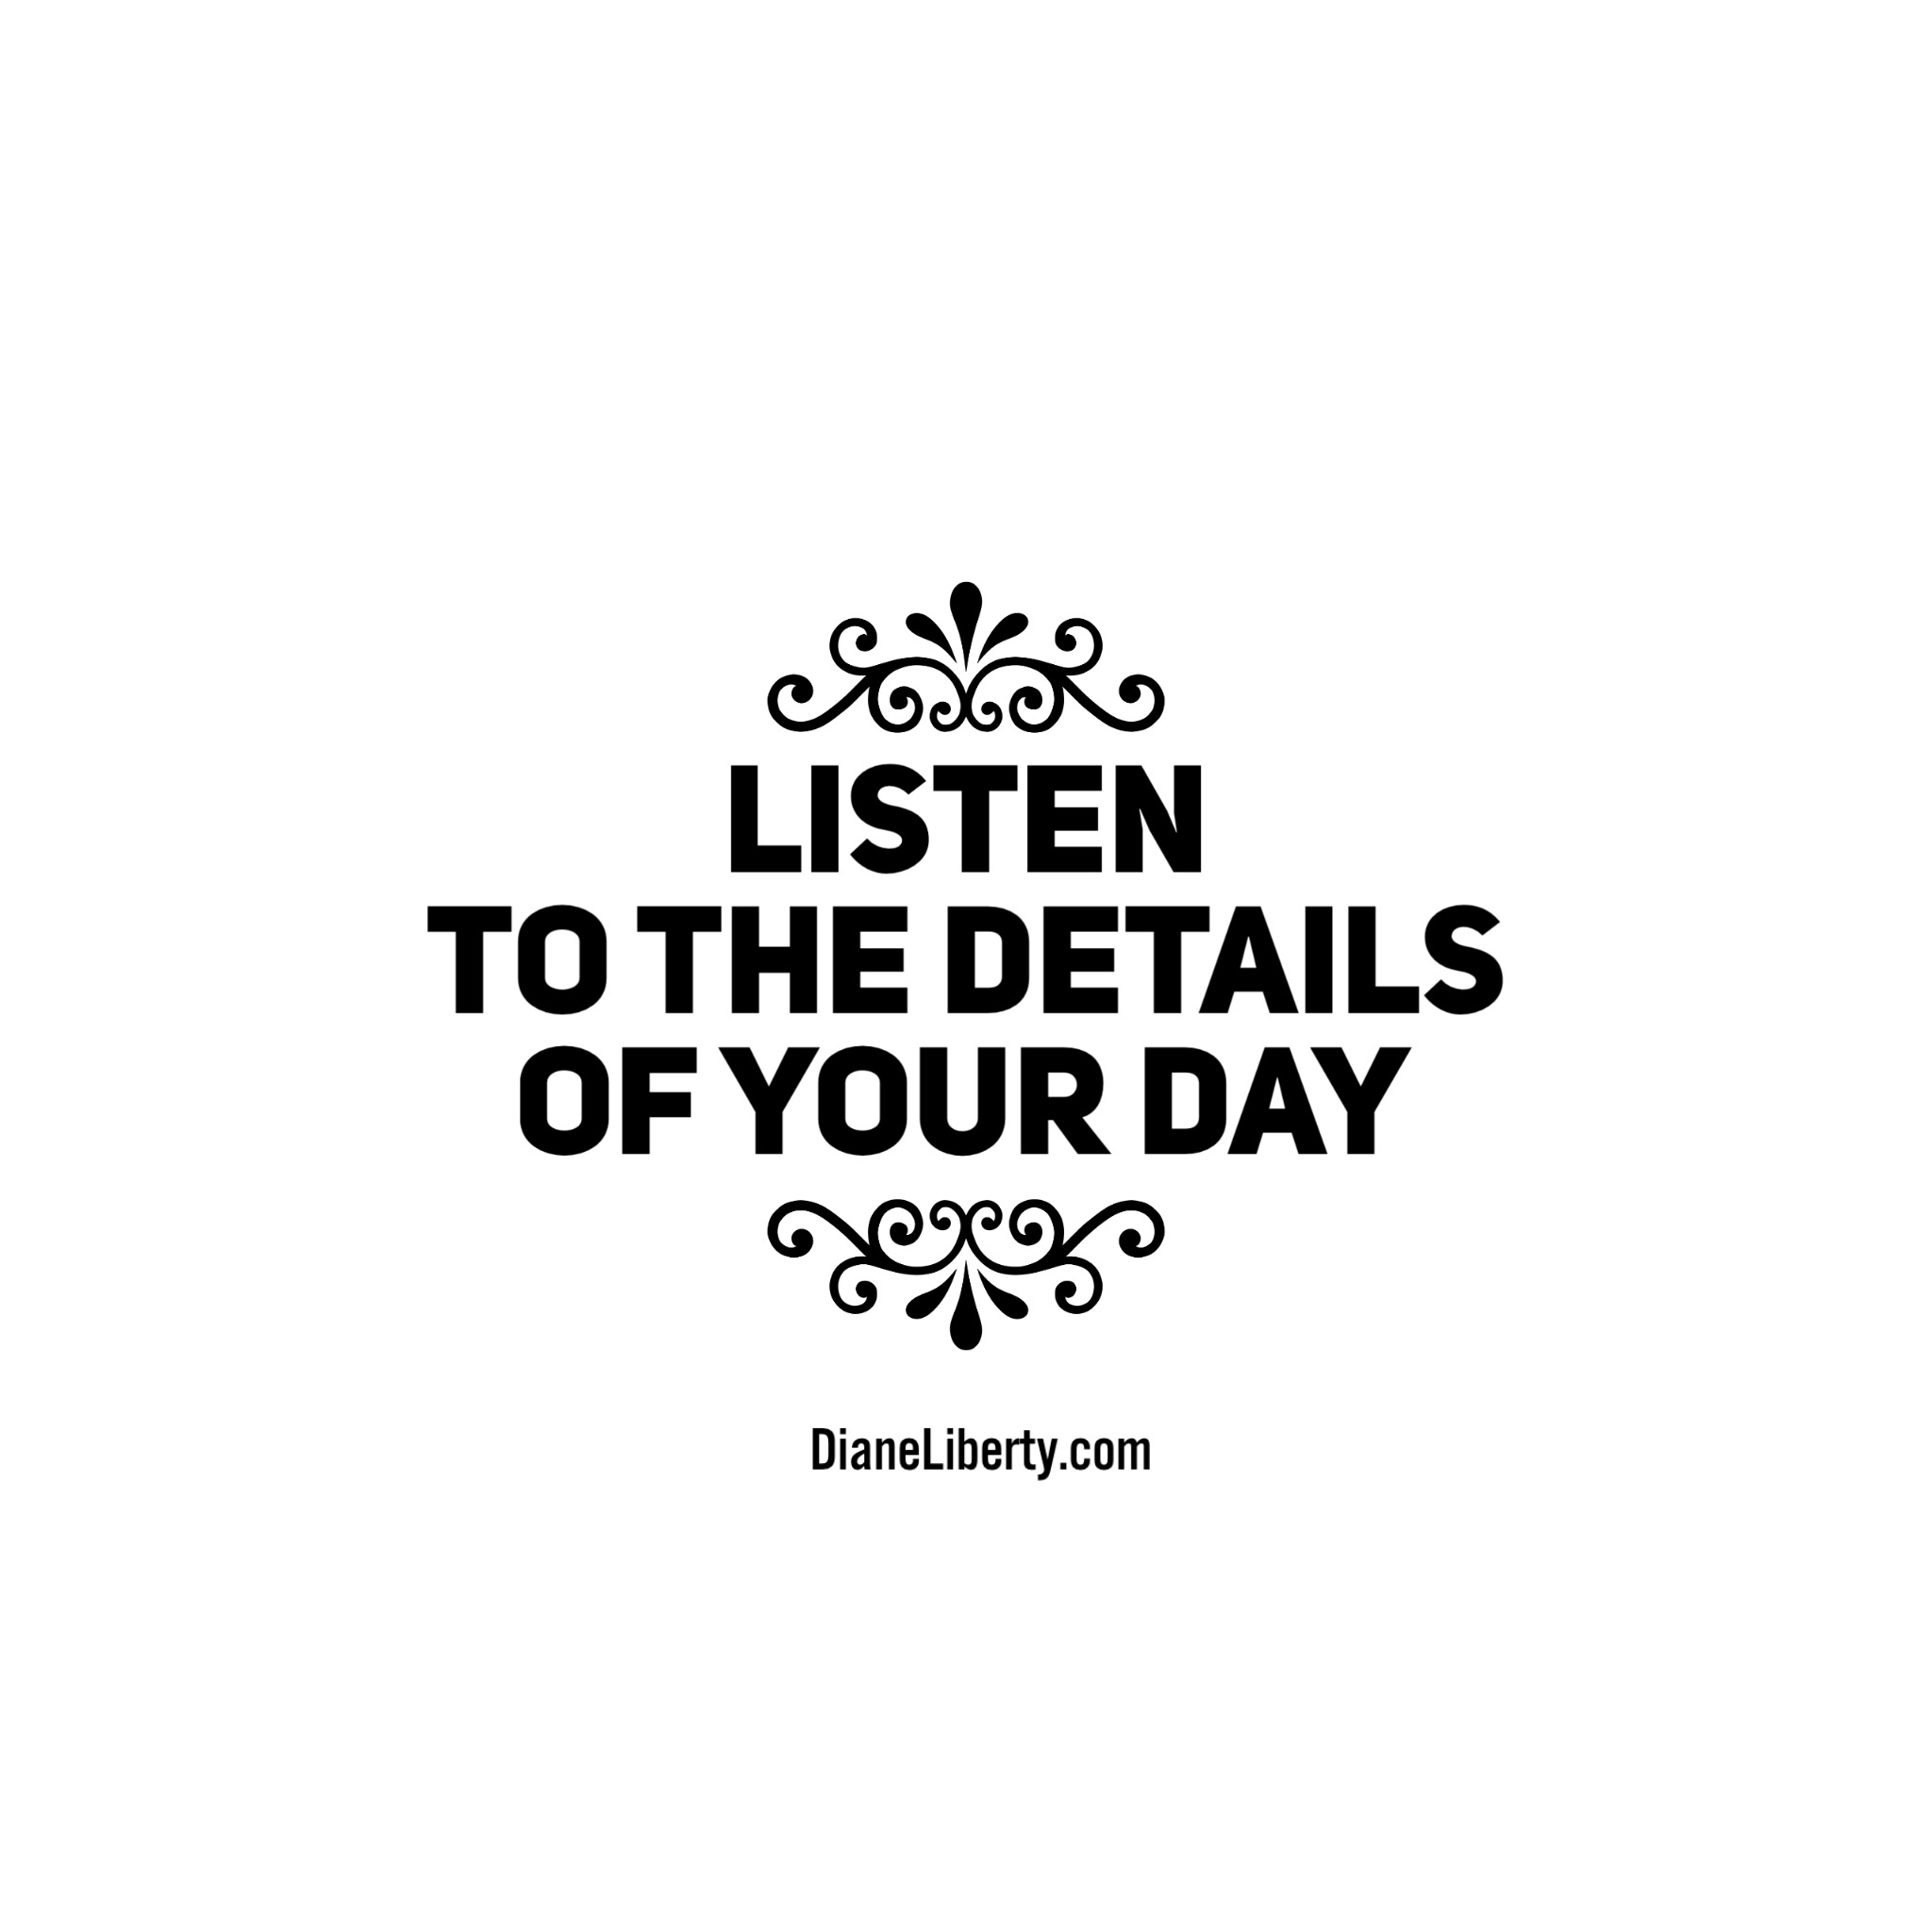 Listen To The Details Of Your Day